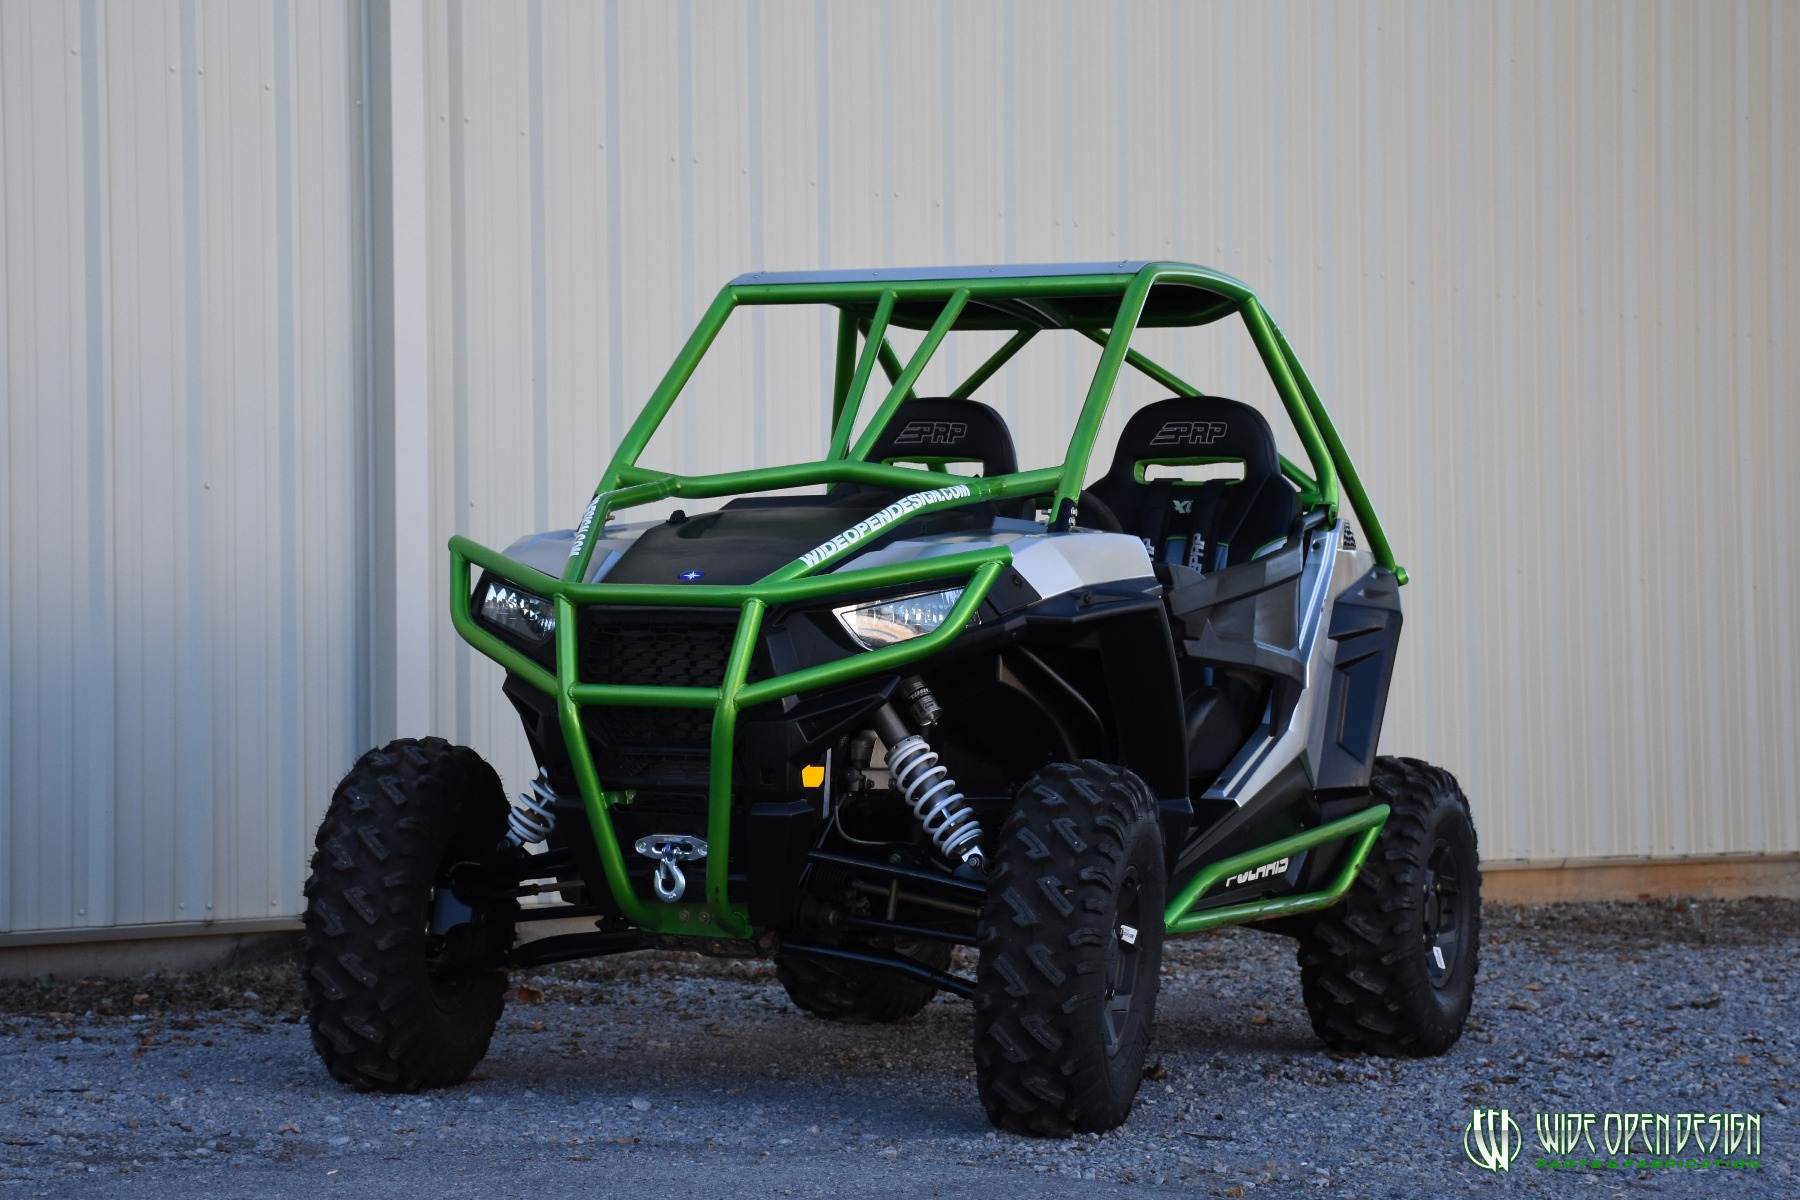 Jason's 1000s RZR with Wide Open Design Rolled Roof Cage, Front Bumper with Tie In, and Rocker Guards 16